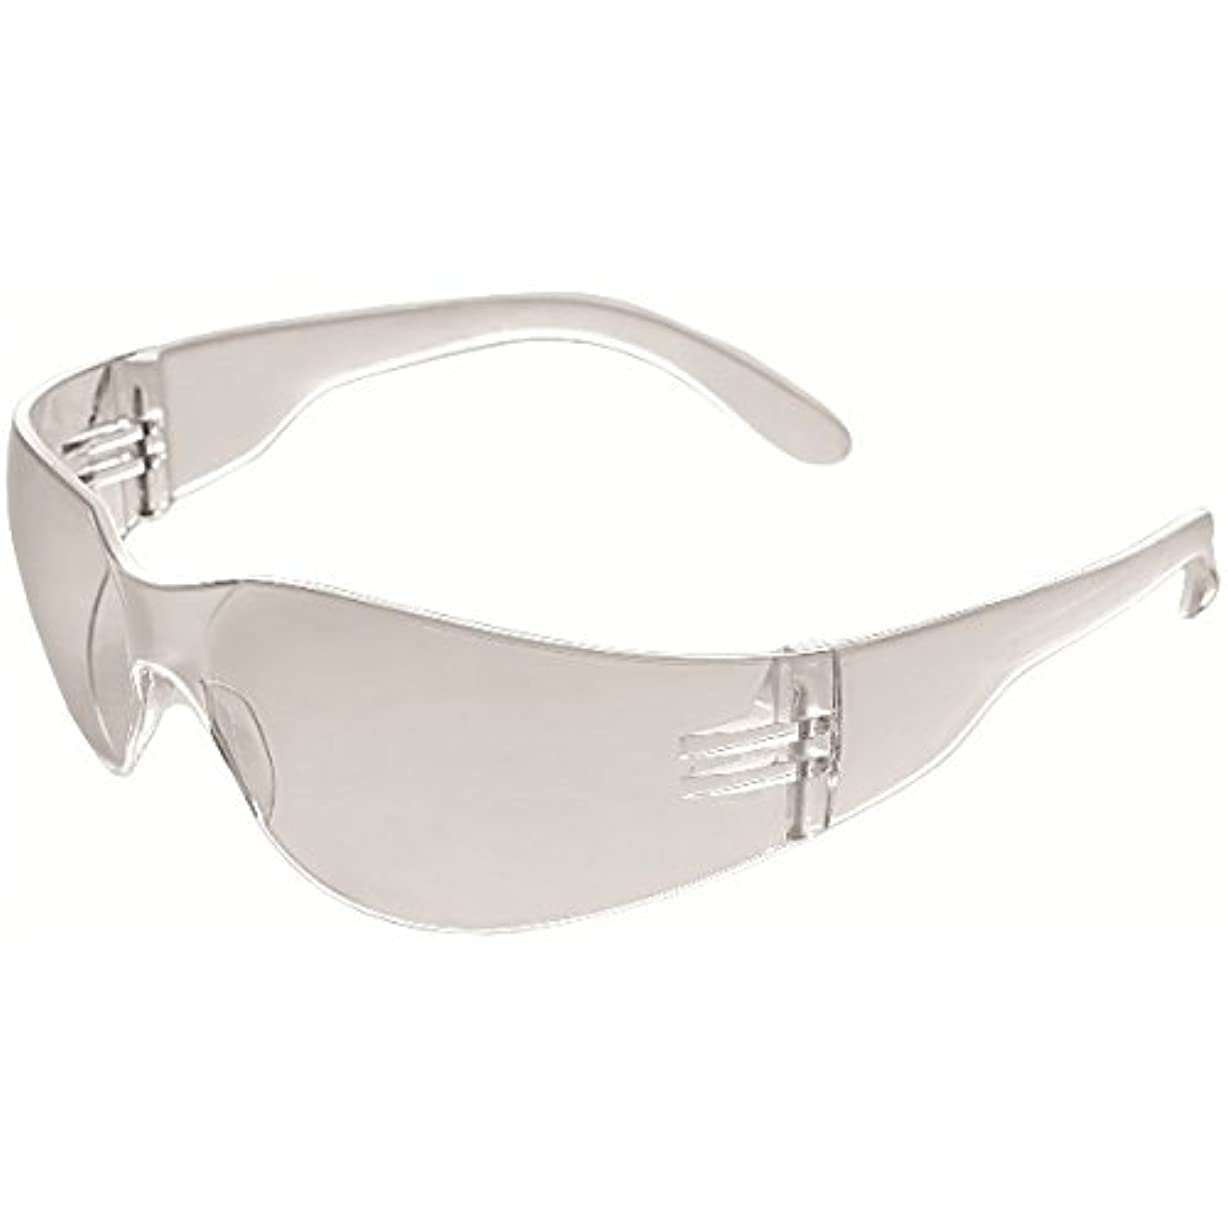 ライフルピンロック解除(Clear Lens) - ERB 17940 iProtect Safety Glasses, Clear Frame with Clear Lens